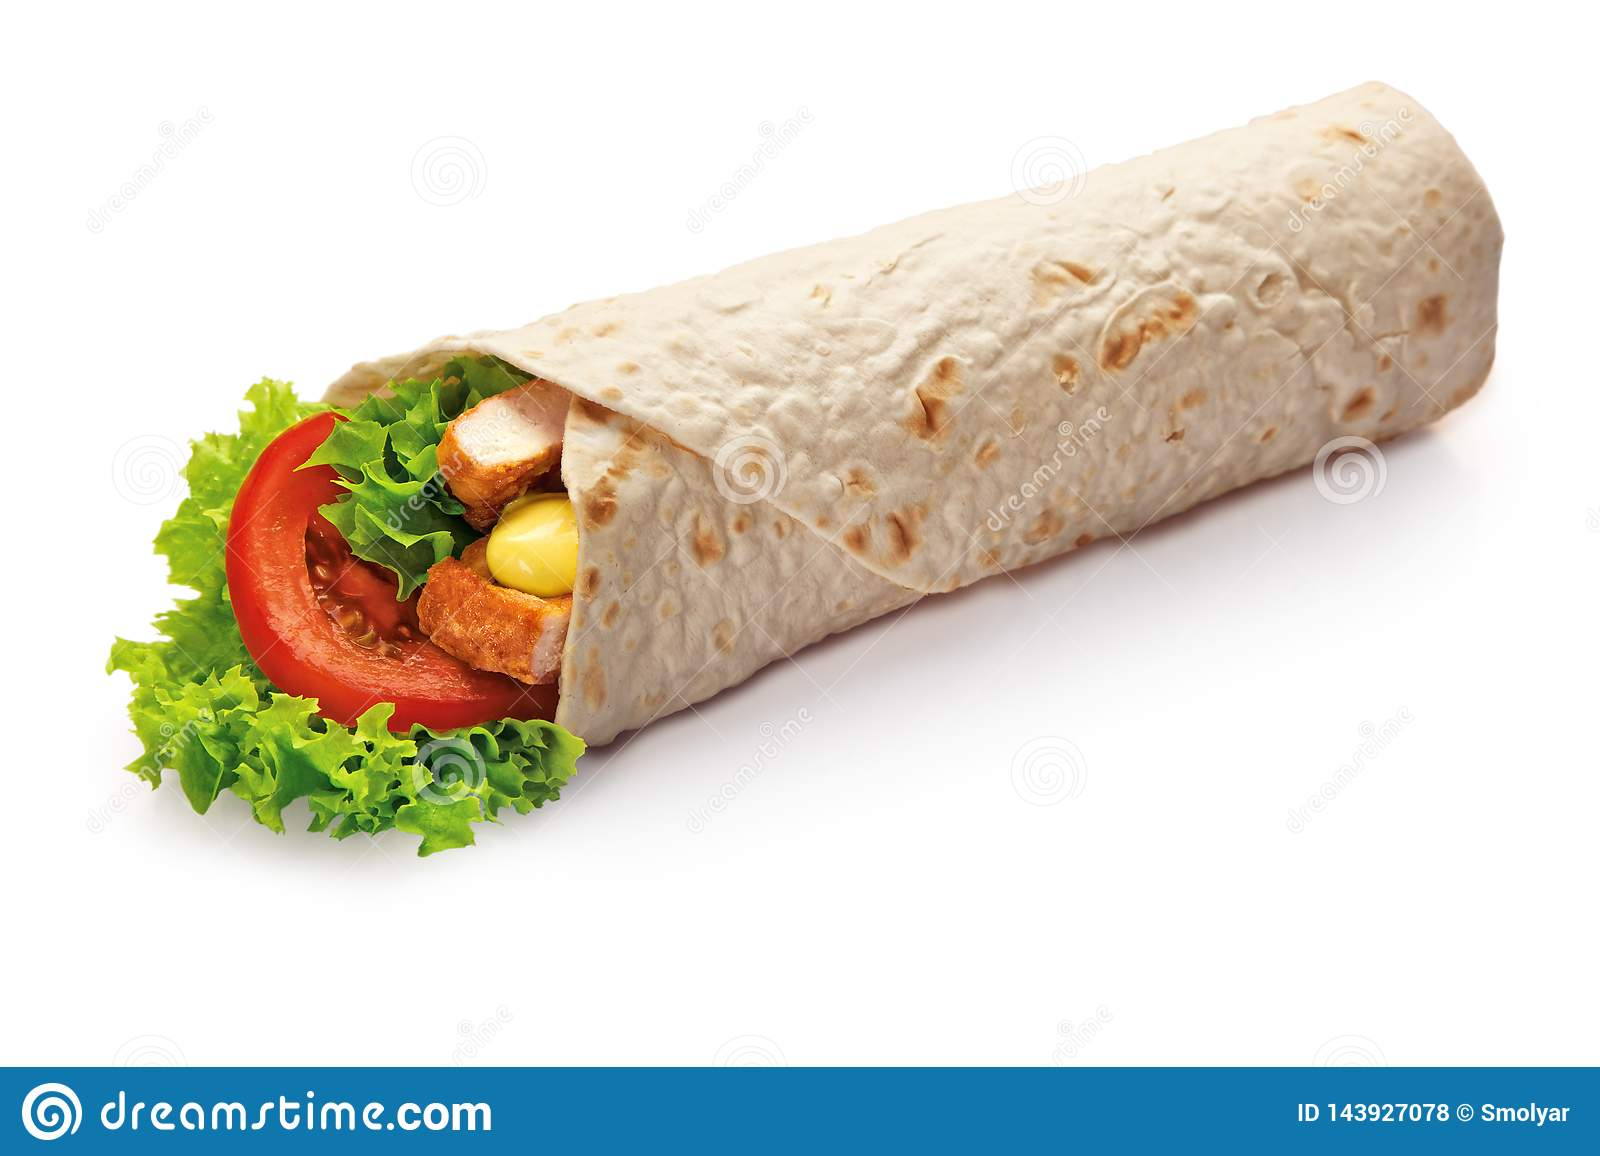 102 992 Kebab Photos Free Royalty Free Stock Photos From Dreamstime